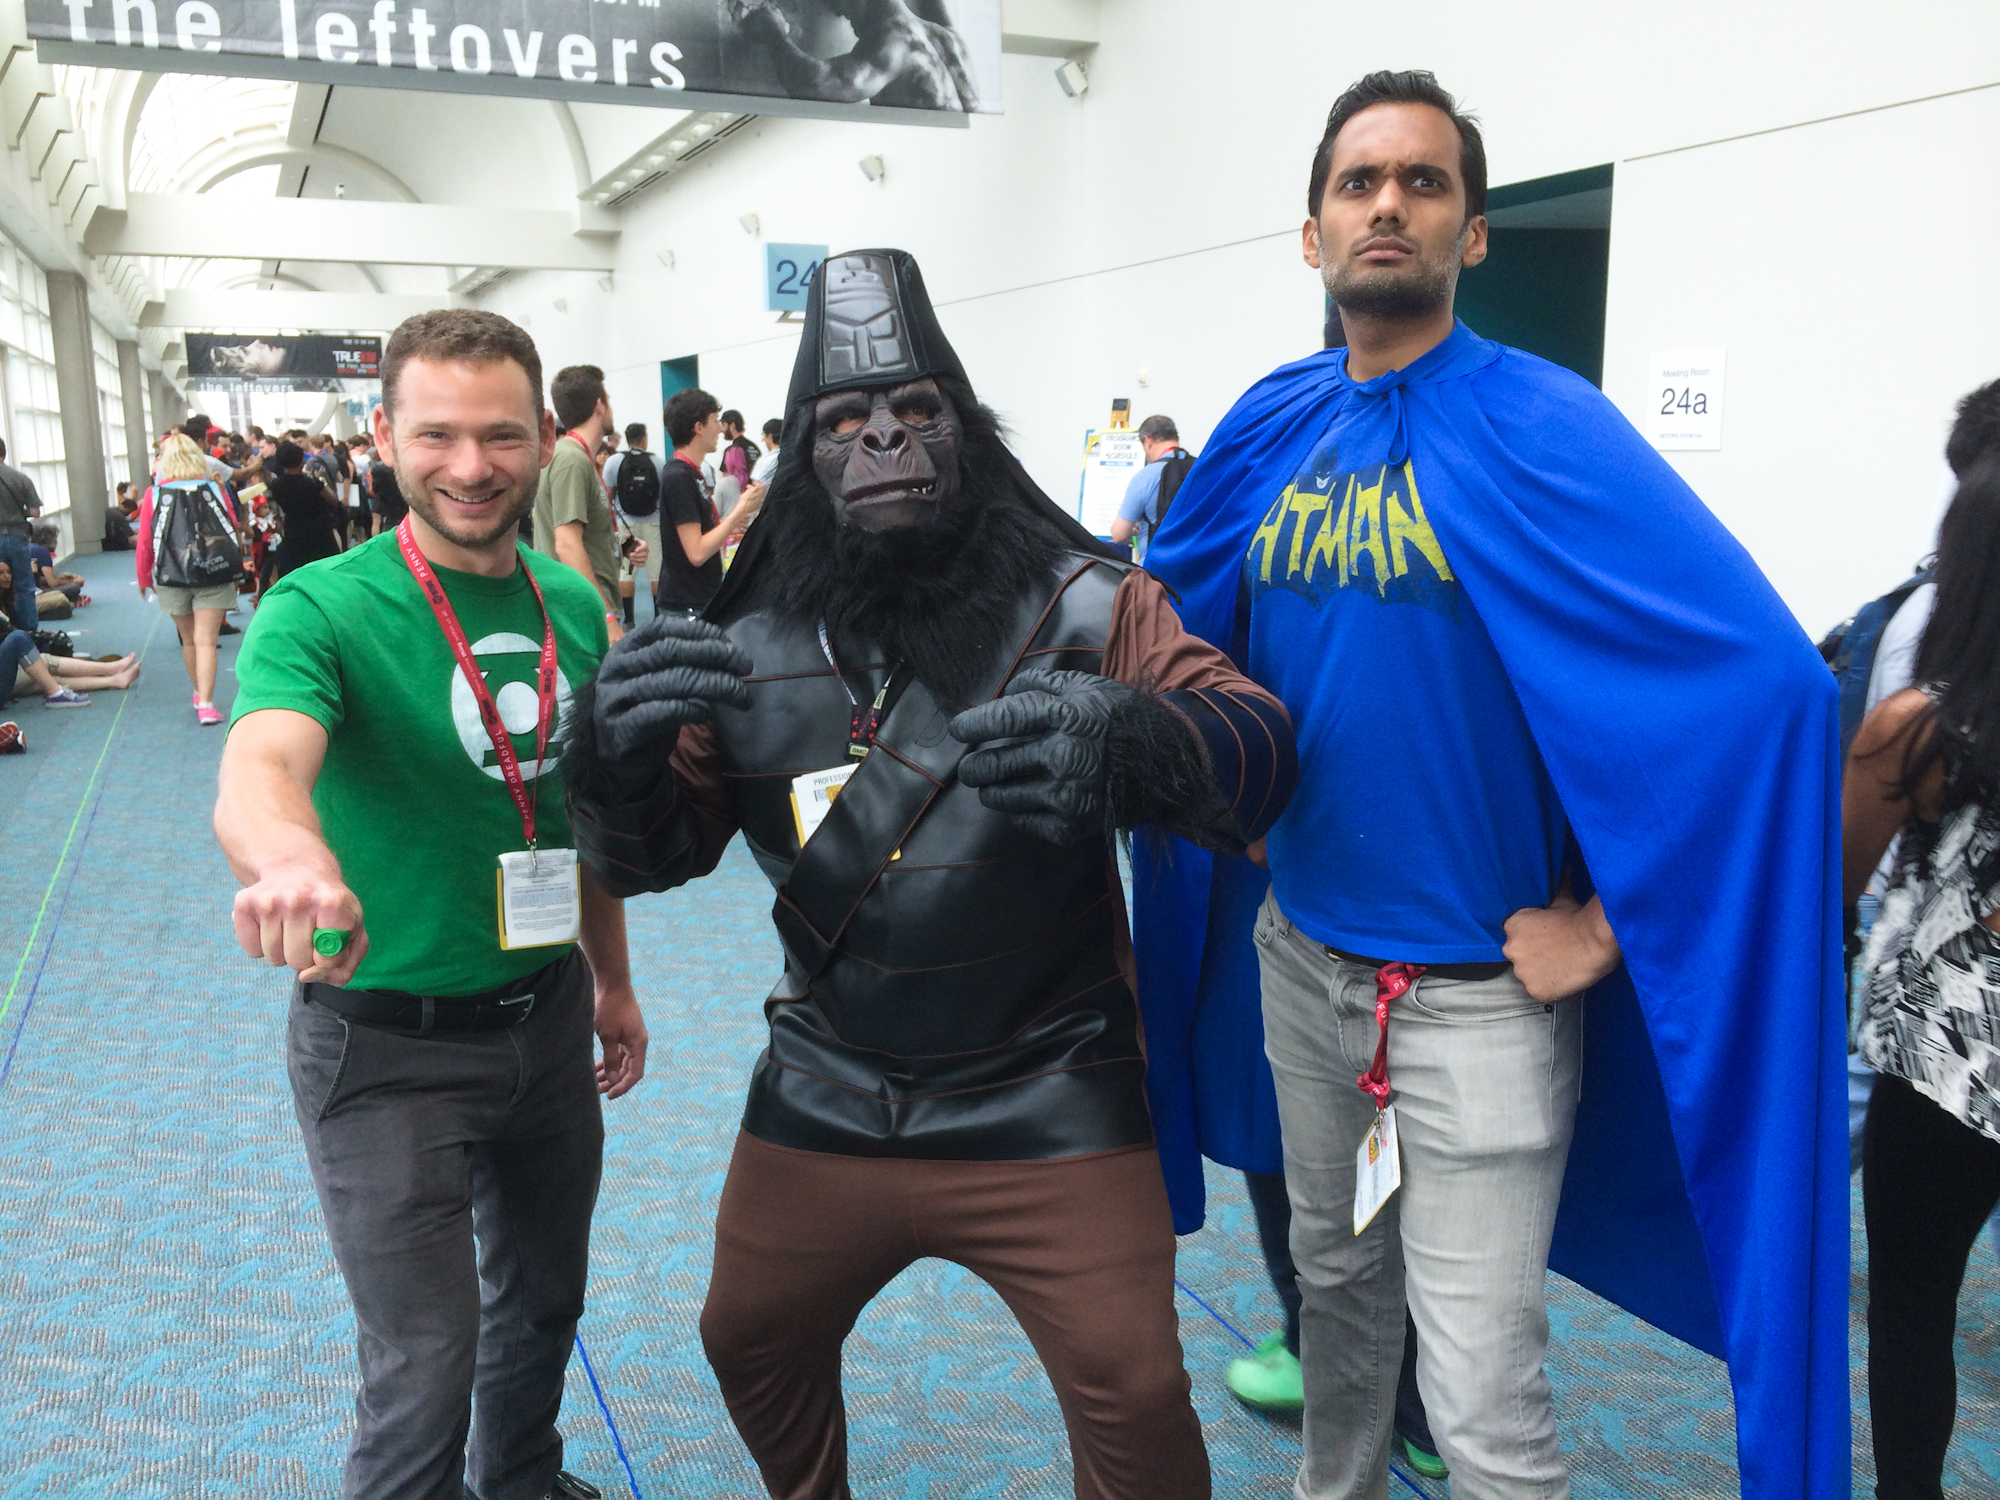 green-lantern-planet-of-the-apes-batman-cosplay-san-diego-comic-con.jpg